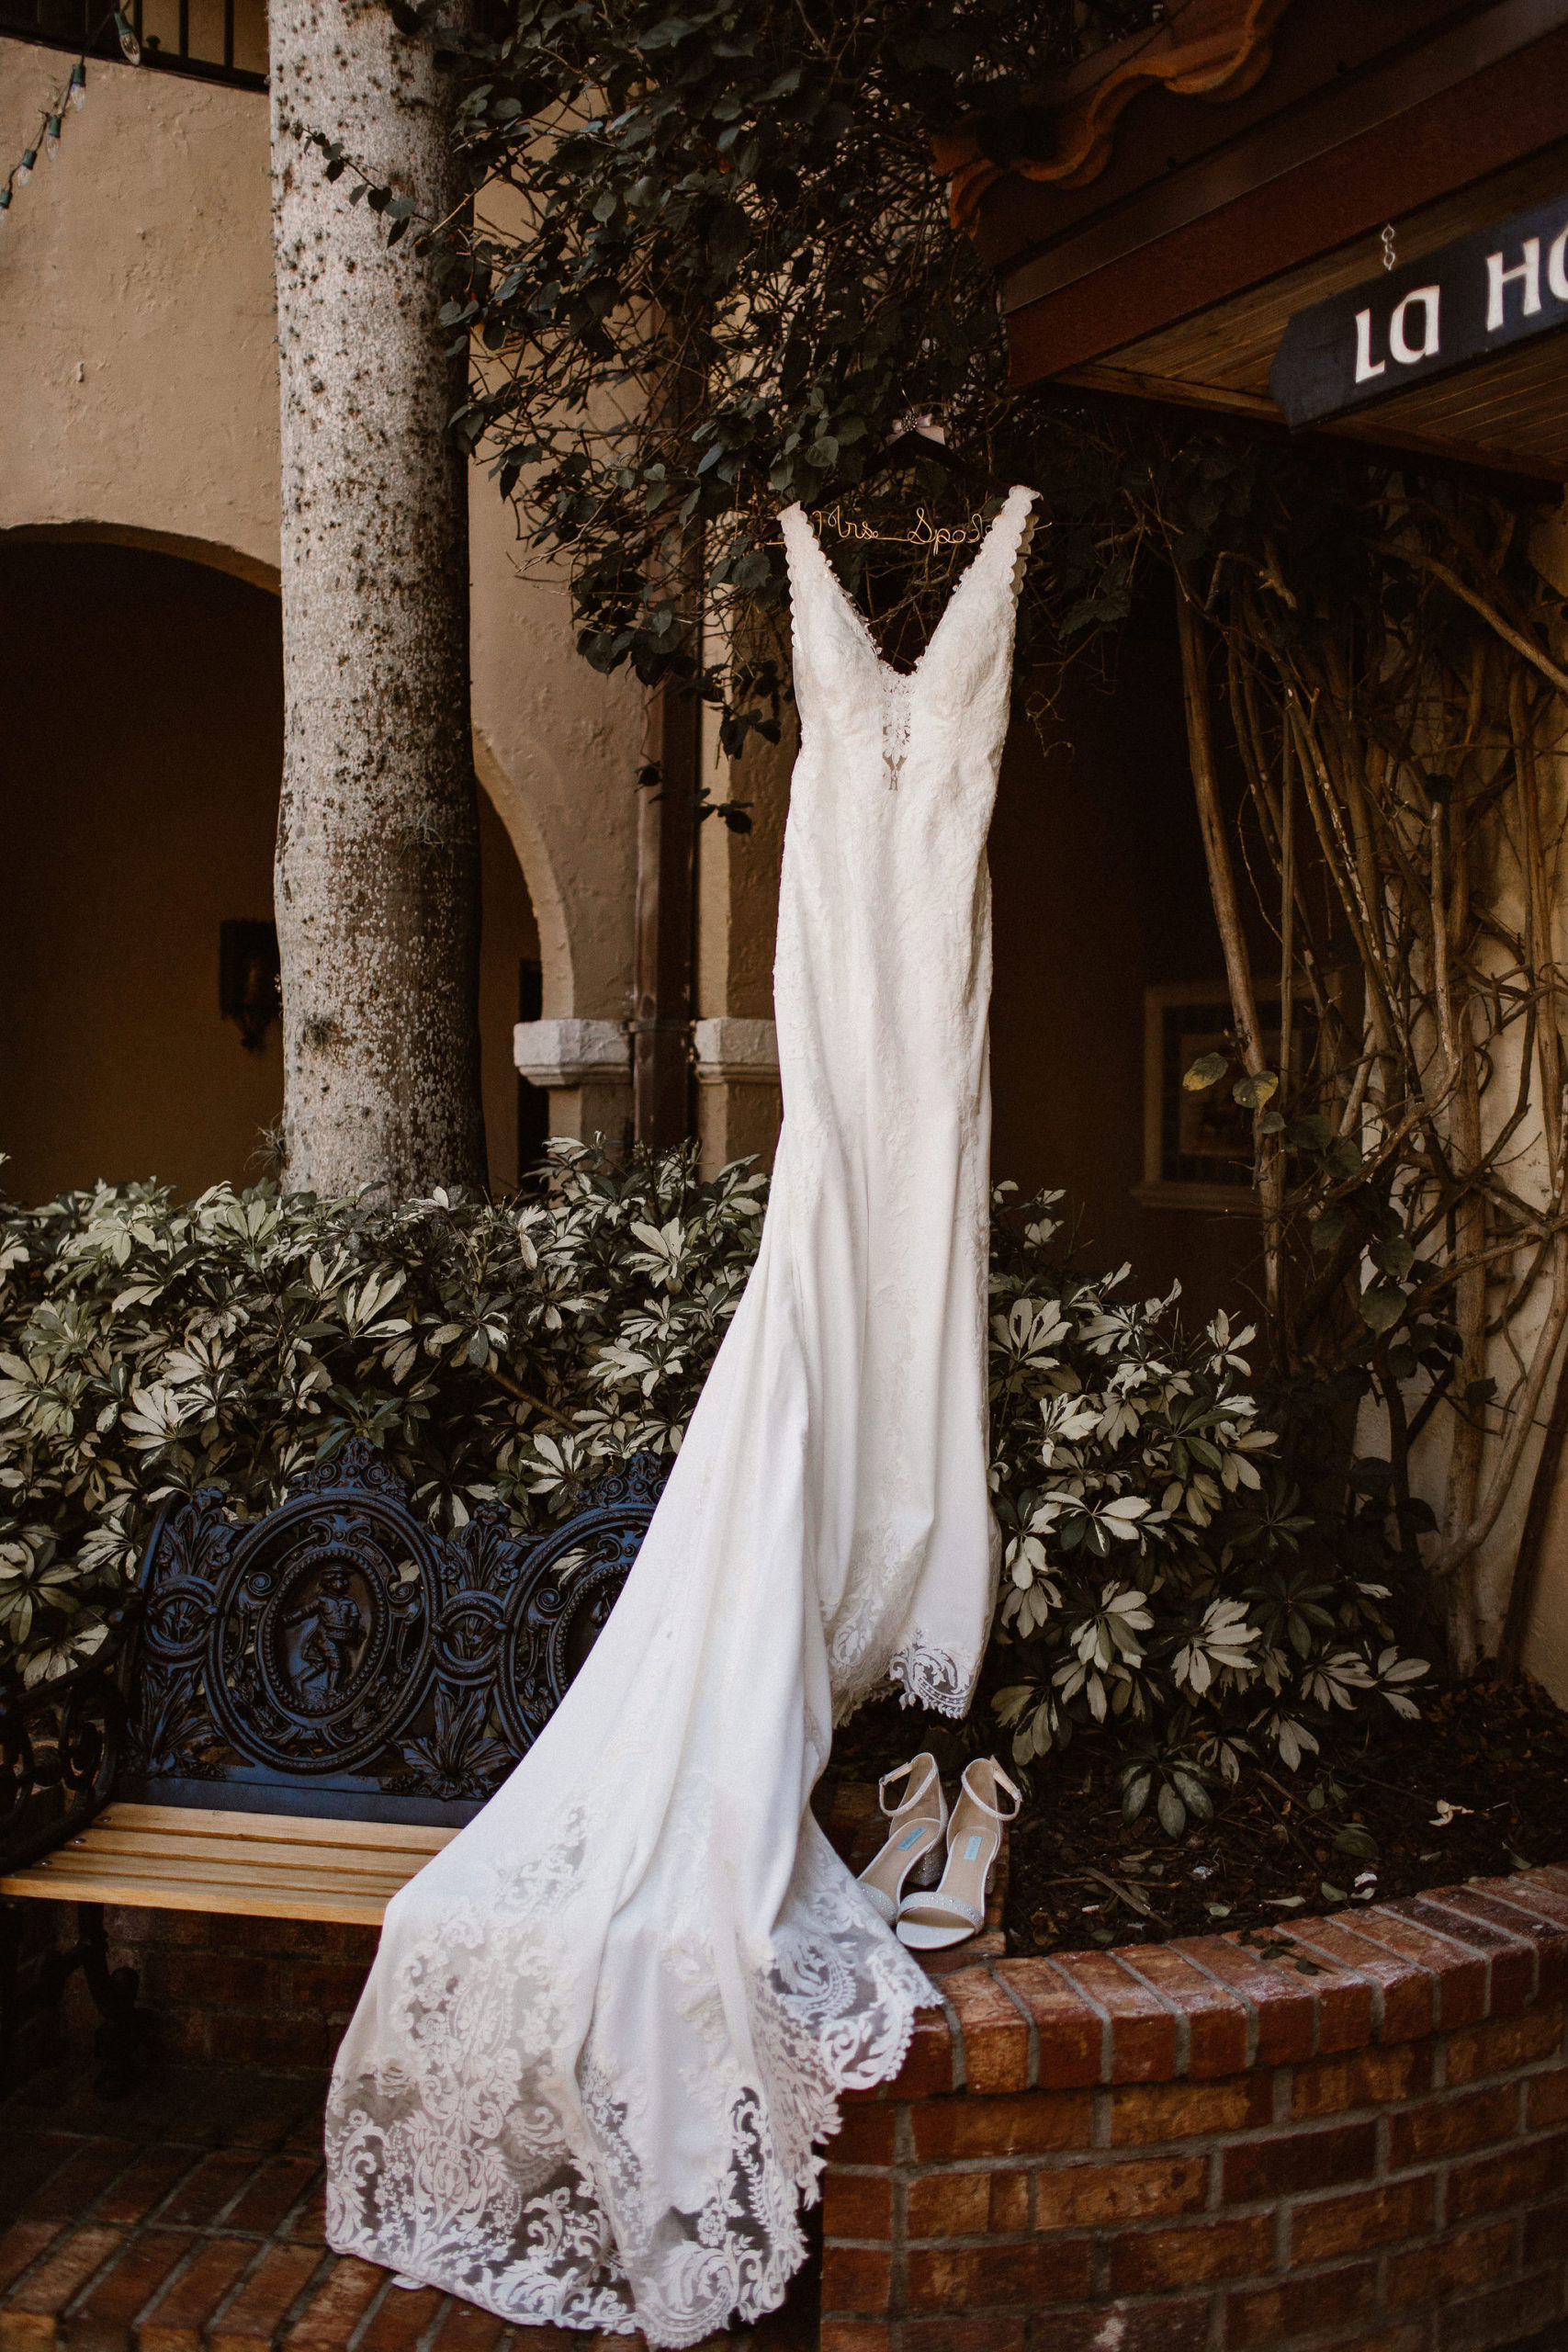 bride's dress hanging in Mission Inn's Plaza de las Palmas